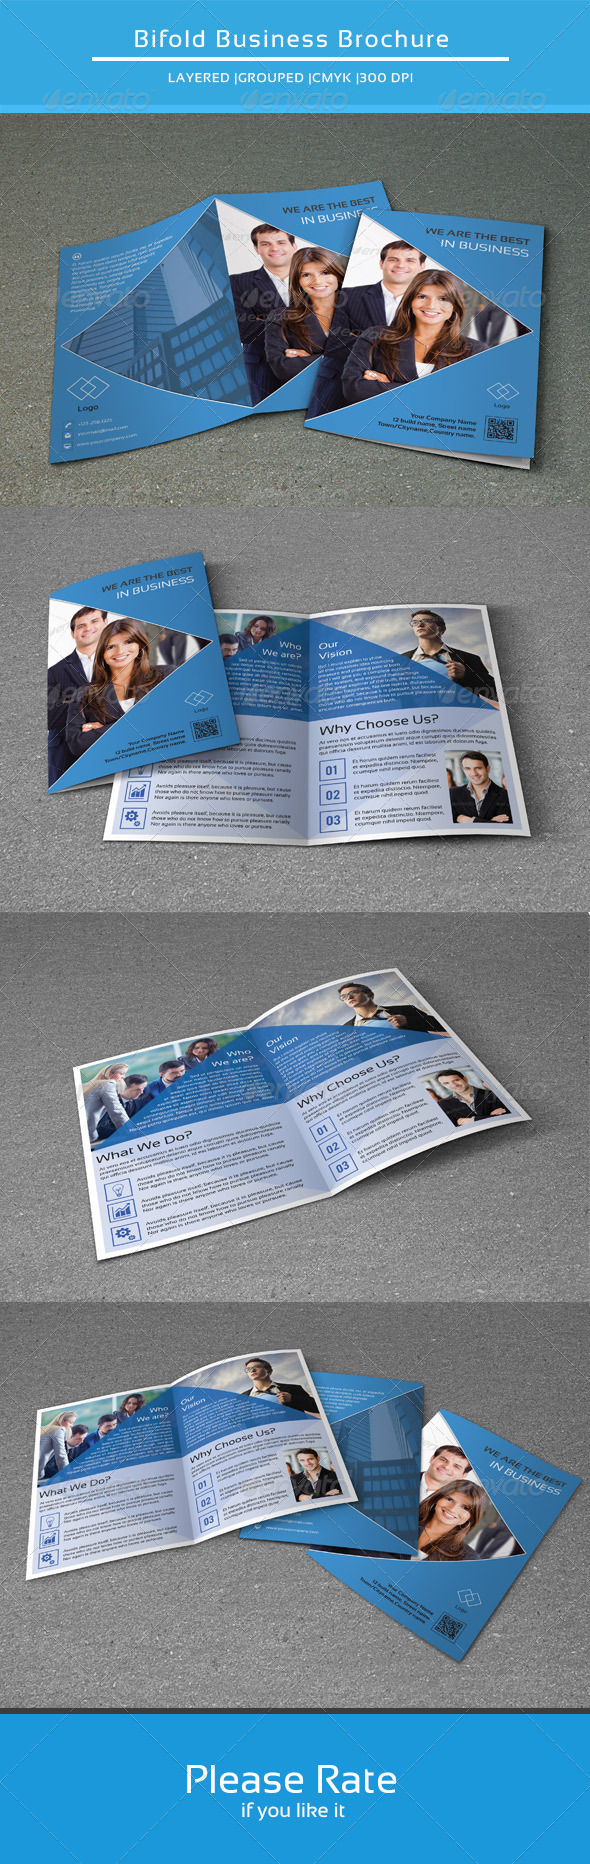 Bifold Business Brochure-V101